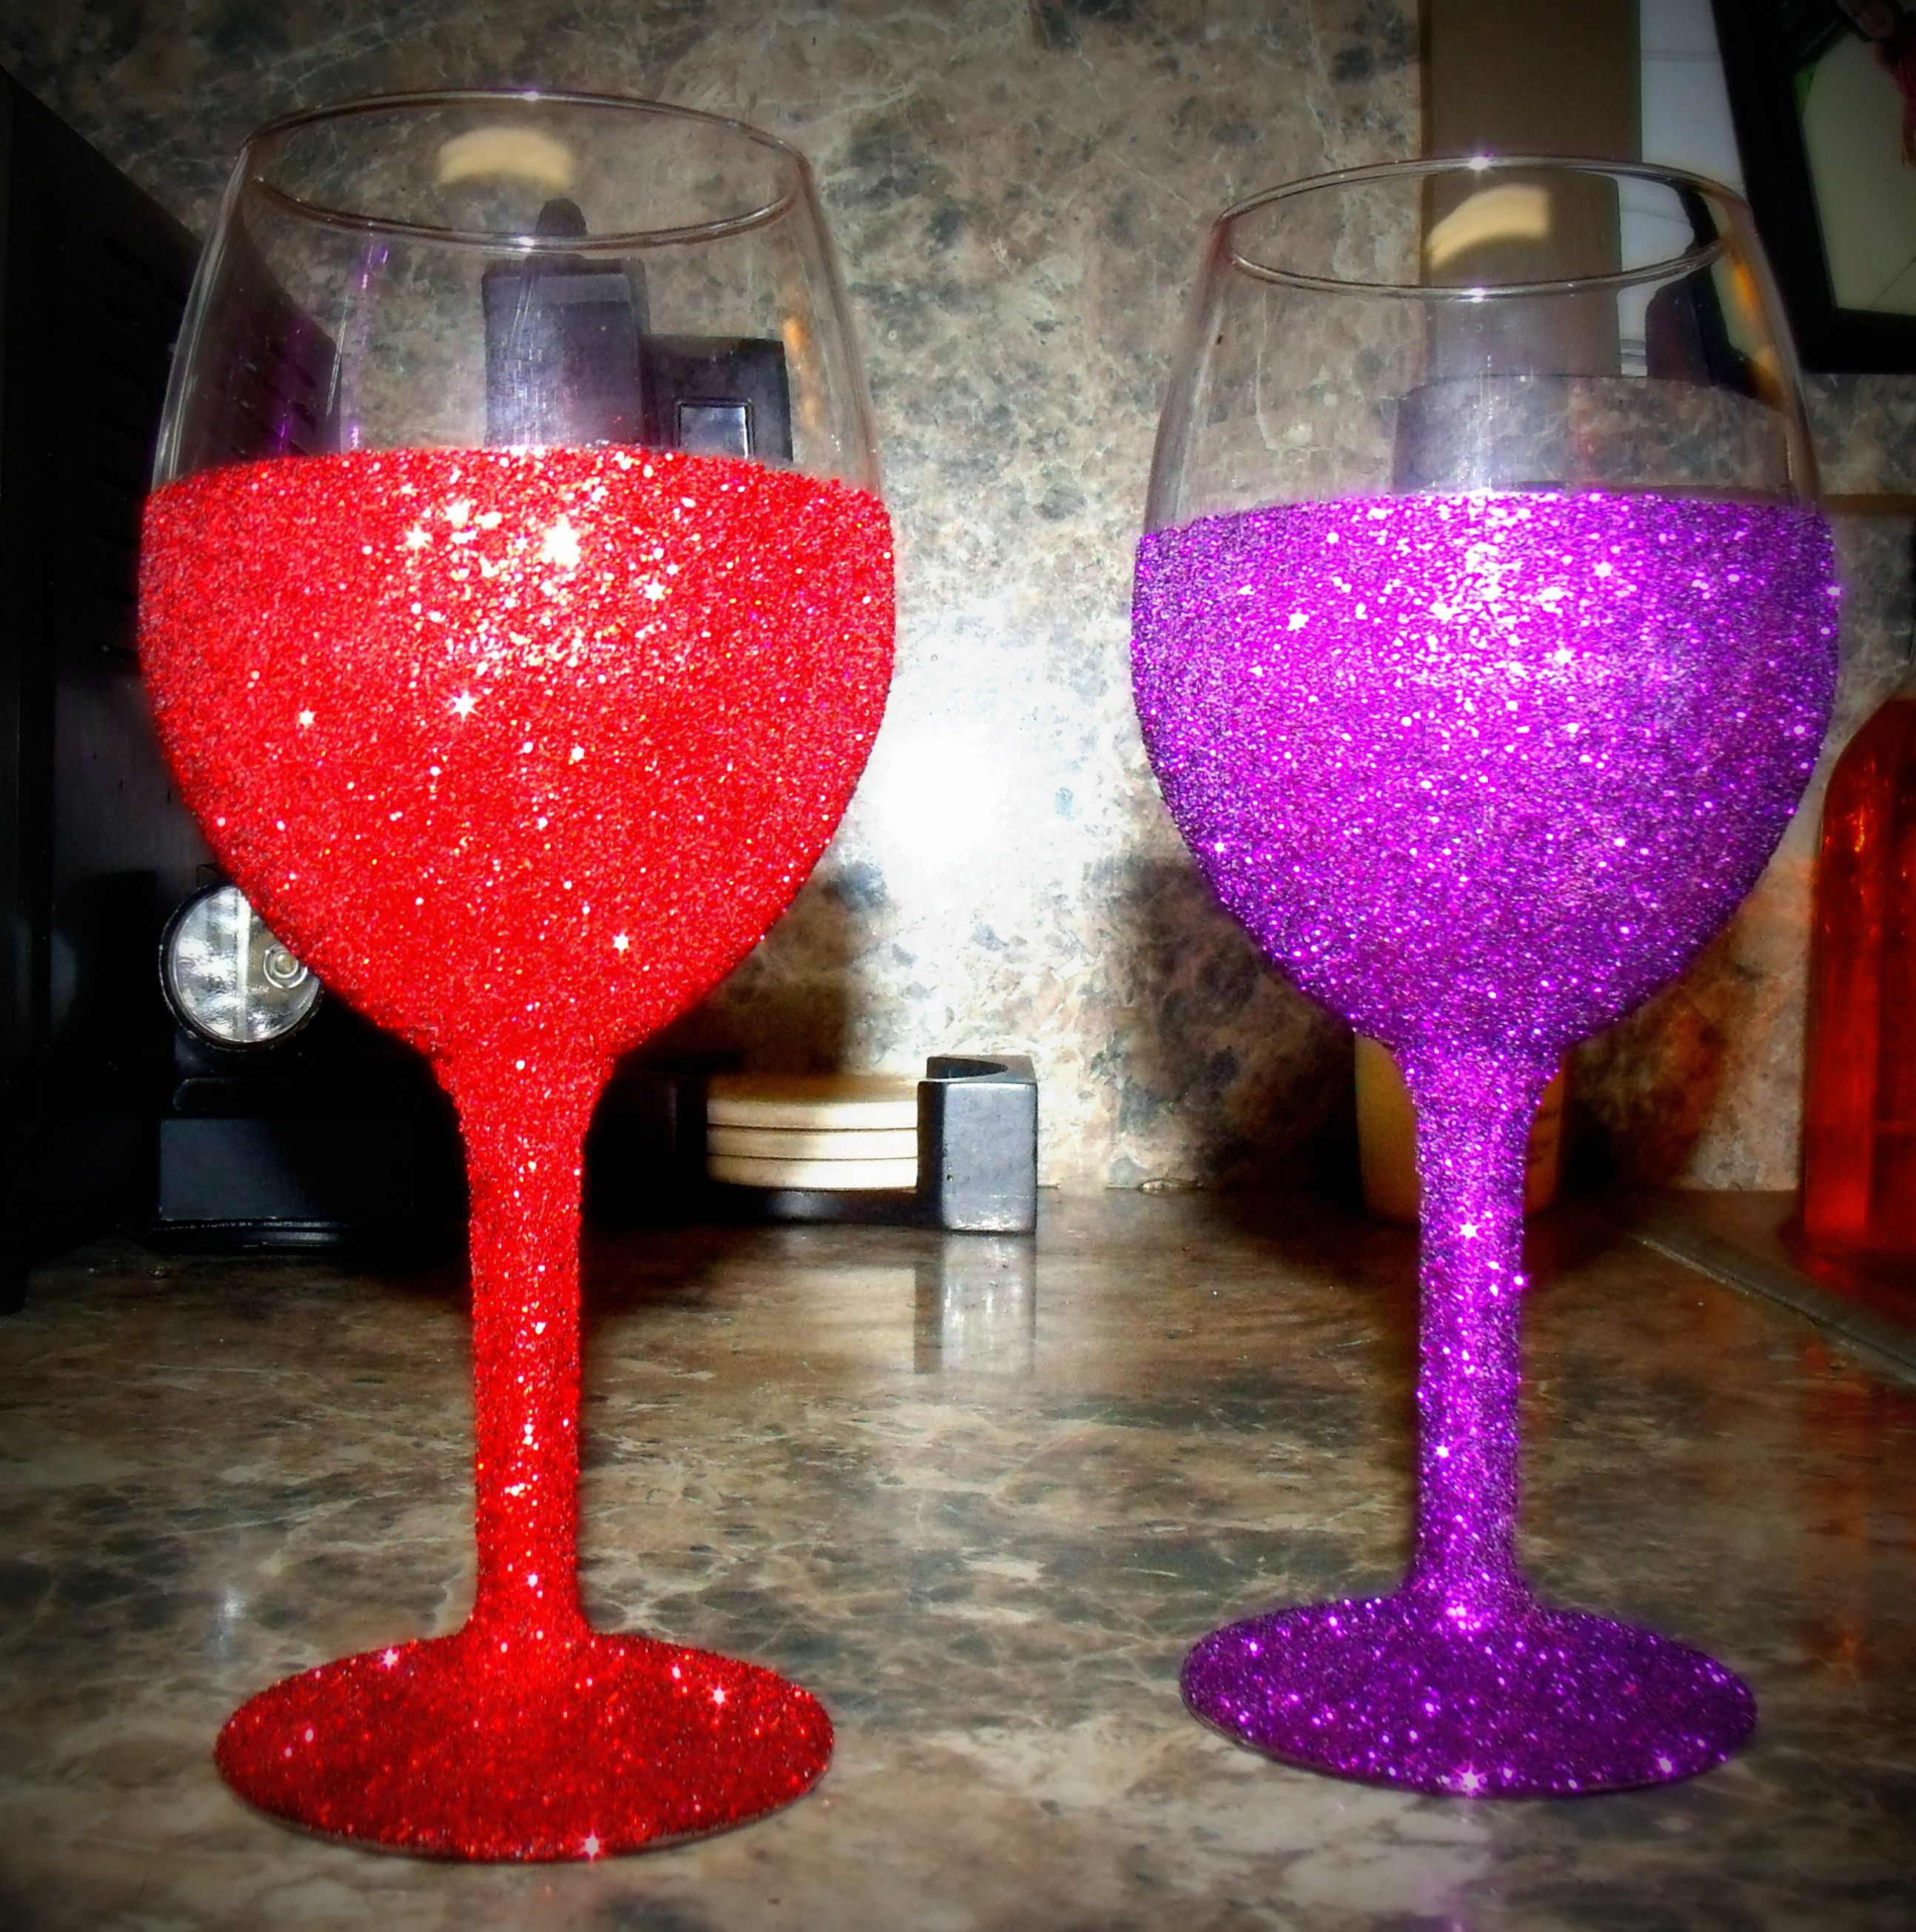 diy glitter wine glasses made with mod podge glitter